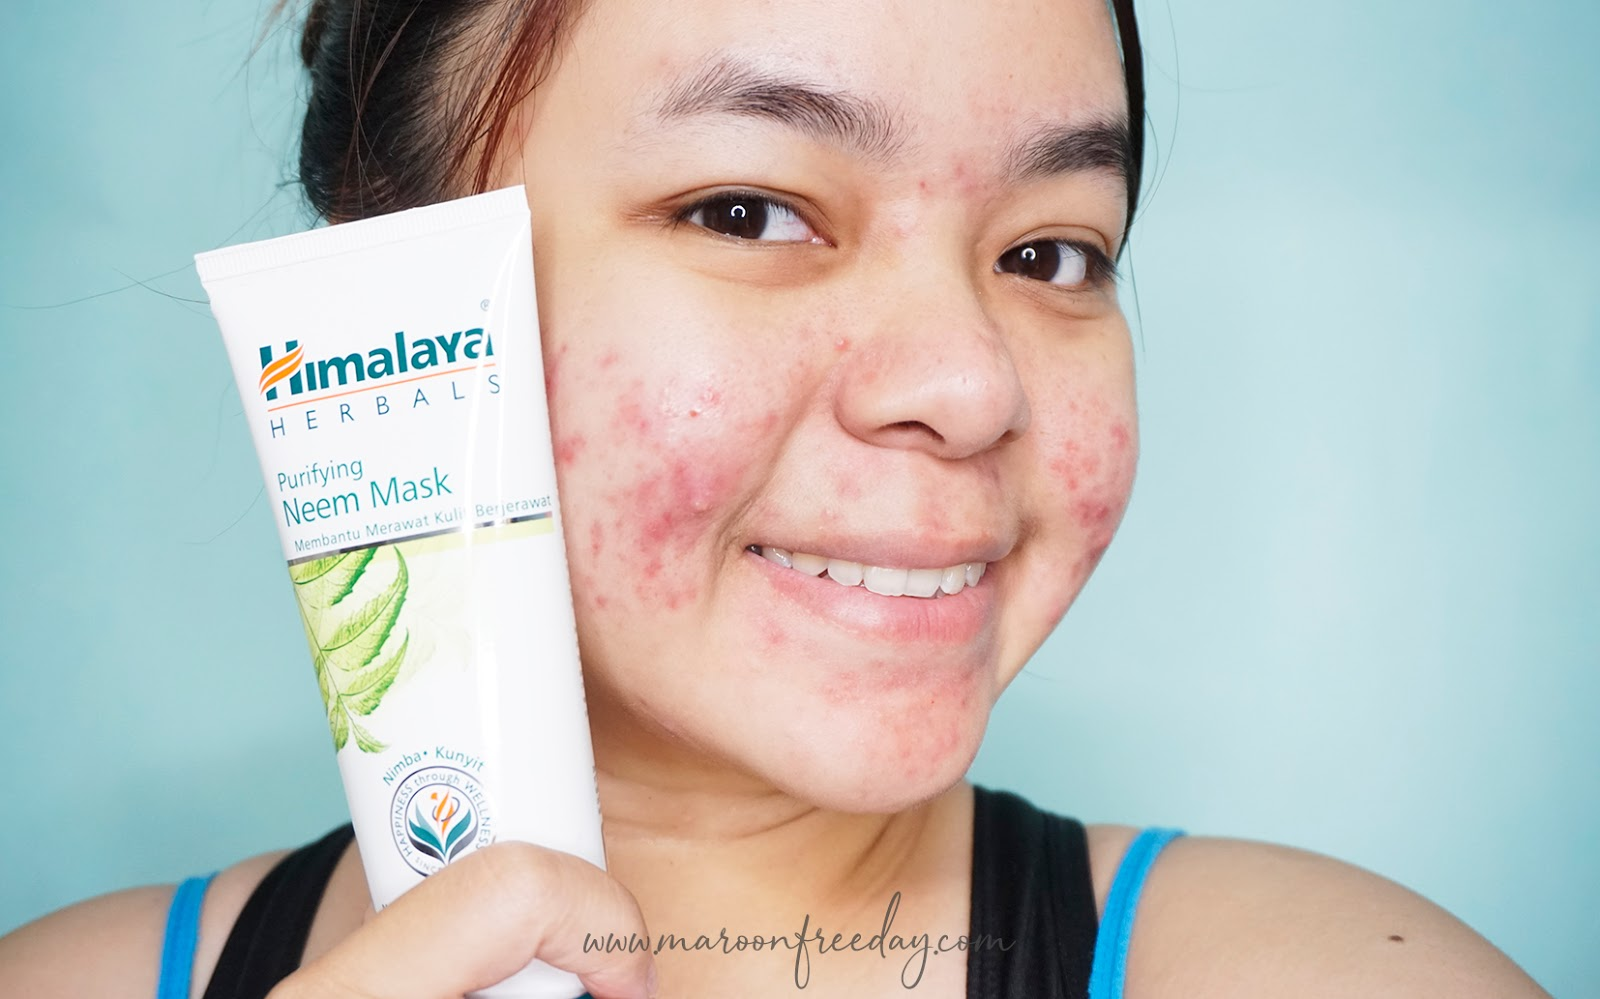 Review Himalaya Herbals Purifying Neem Mask